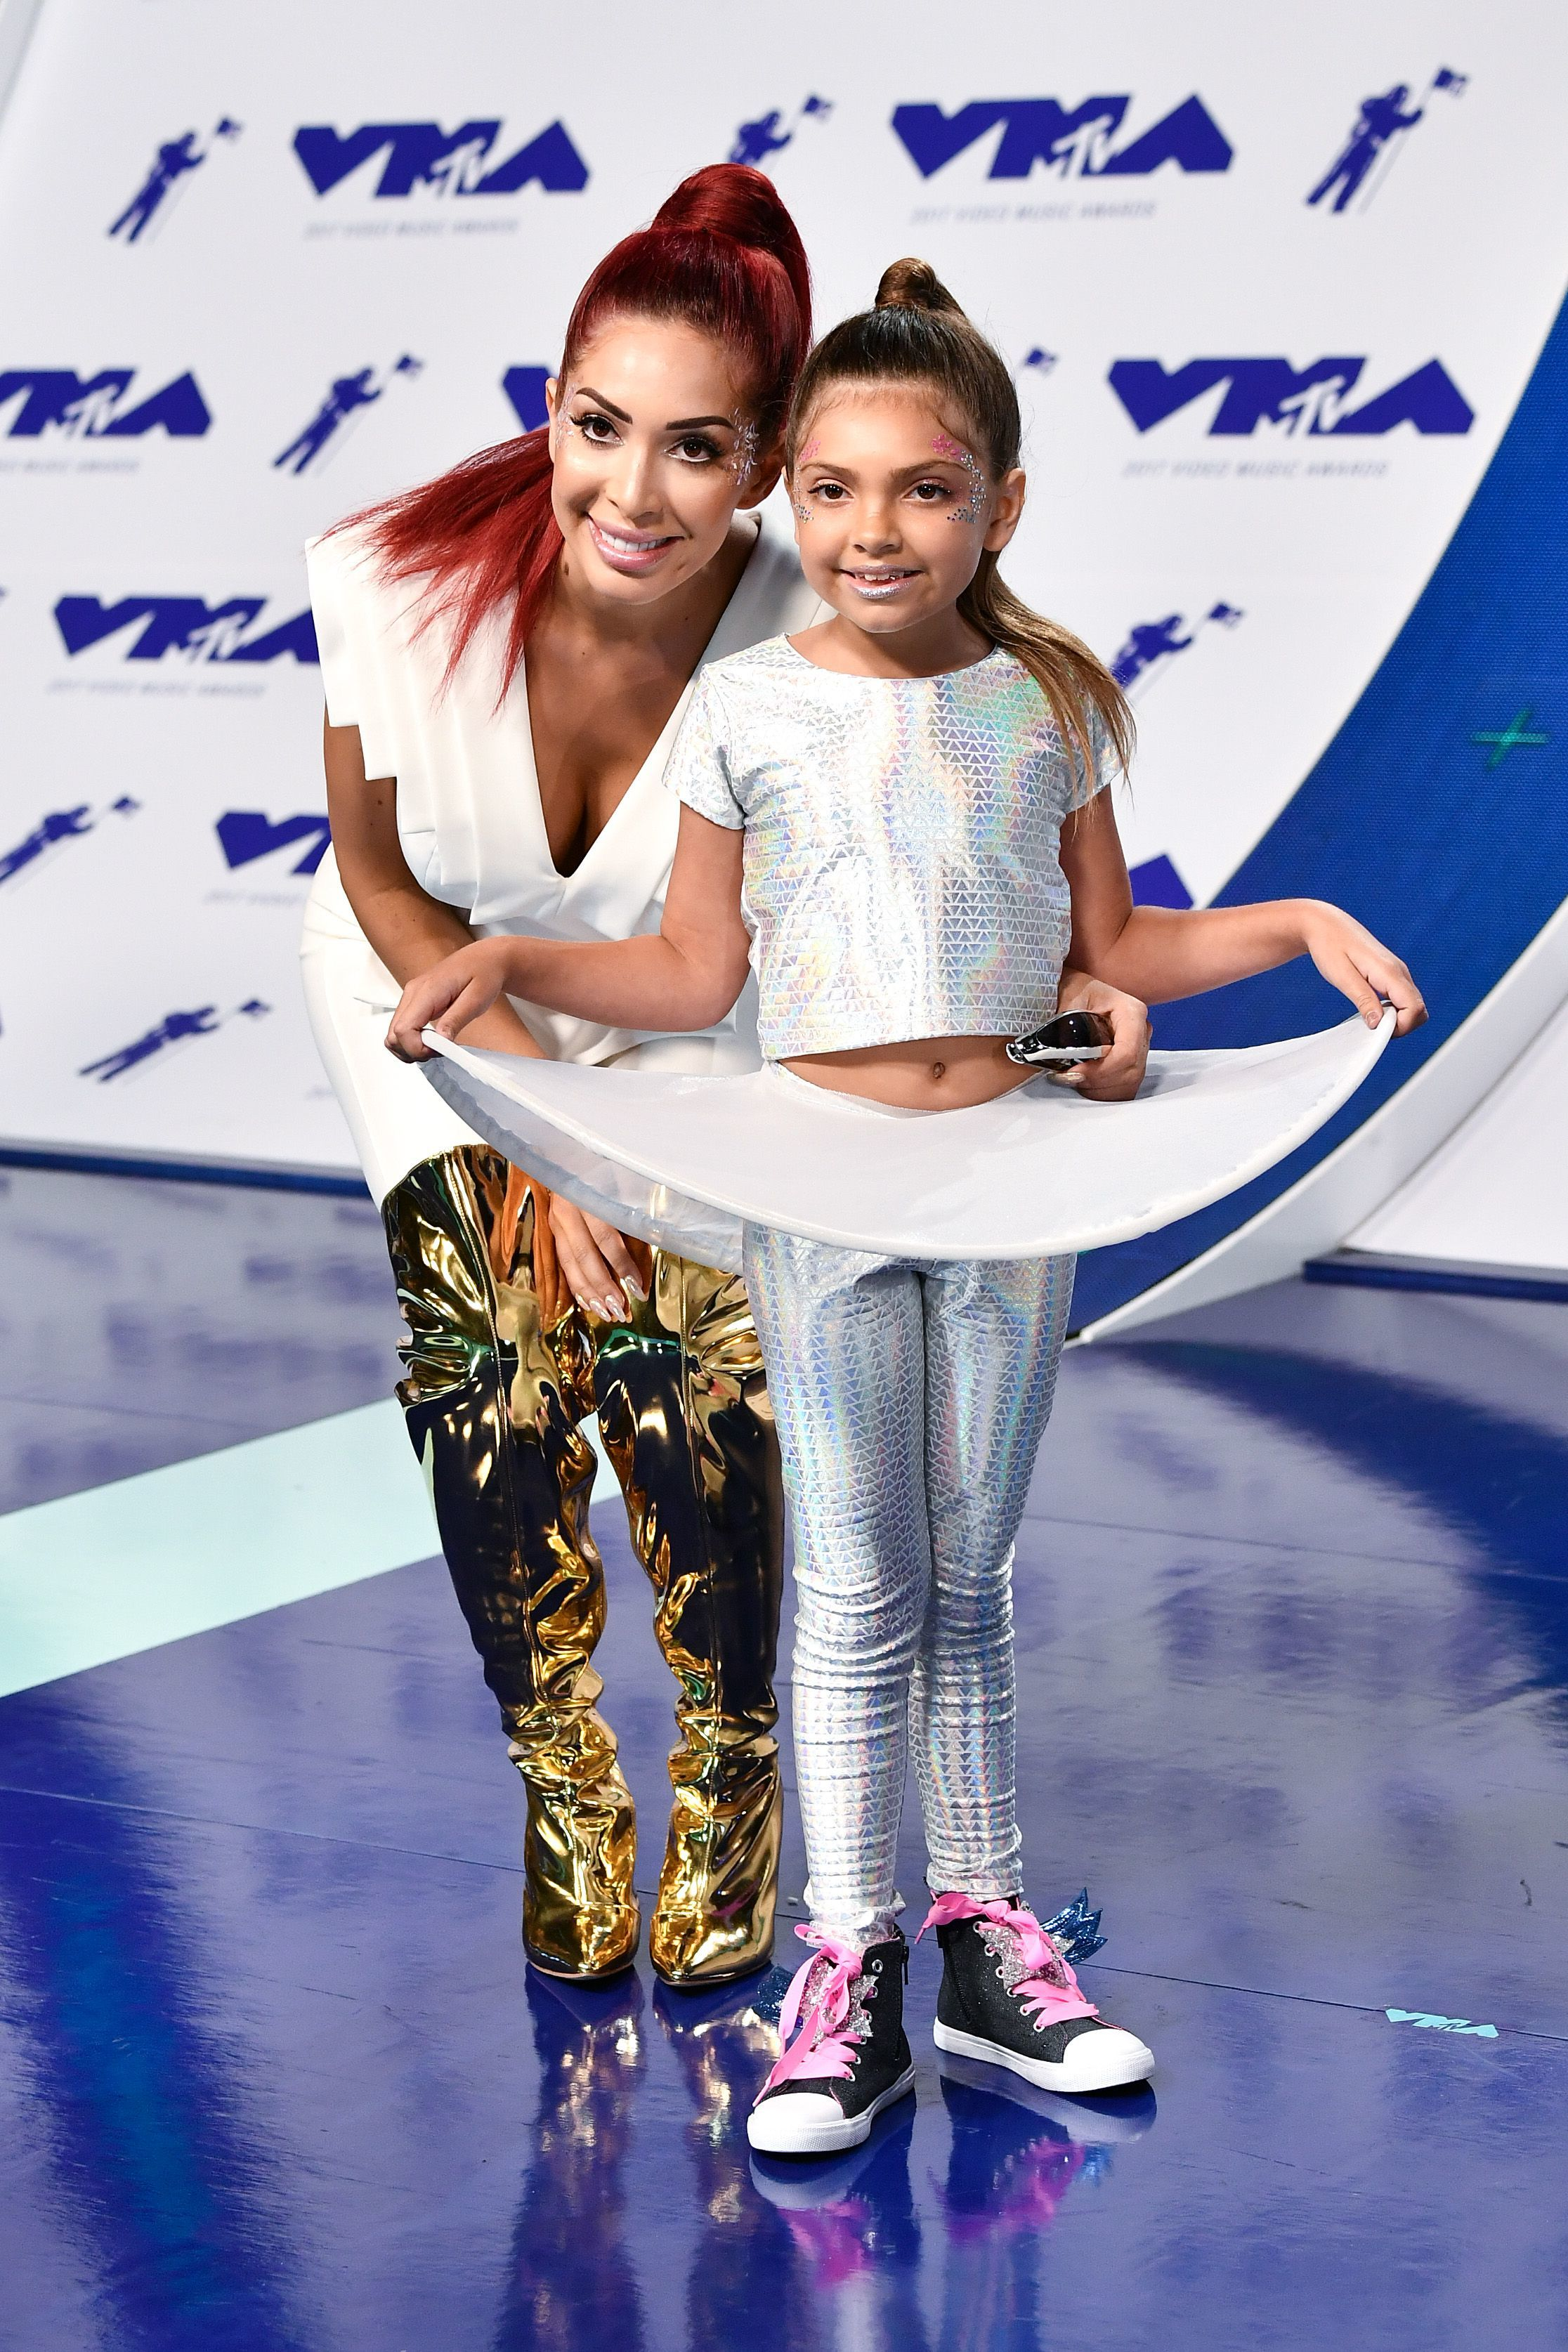 Farrah Abraham and Sophia Abraham were too cute at the MTV Video Music Awards in Los Angeles on Aug. 27, 2017.